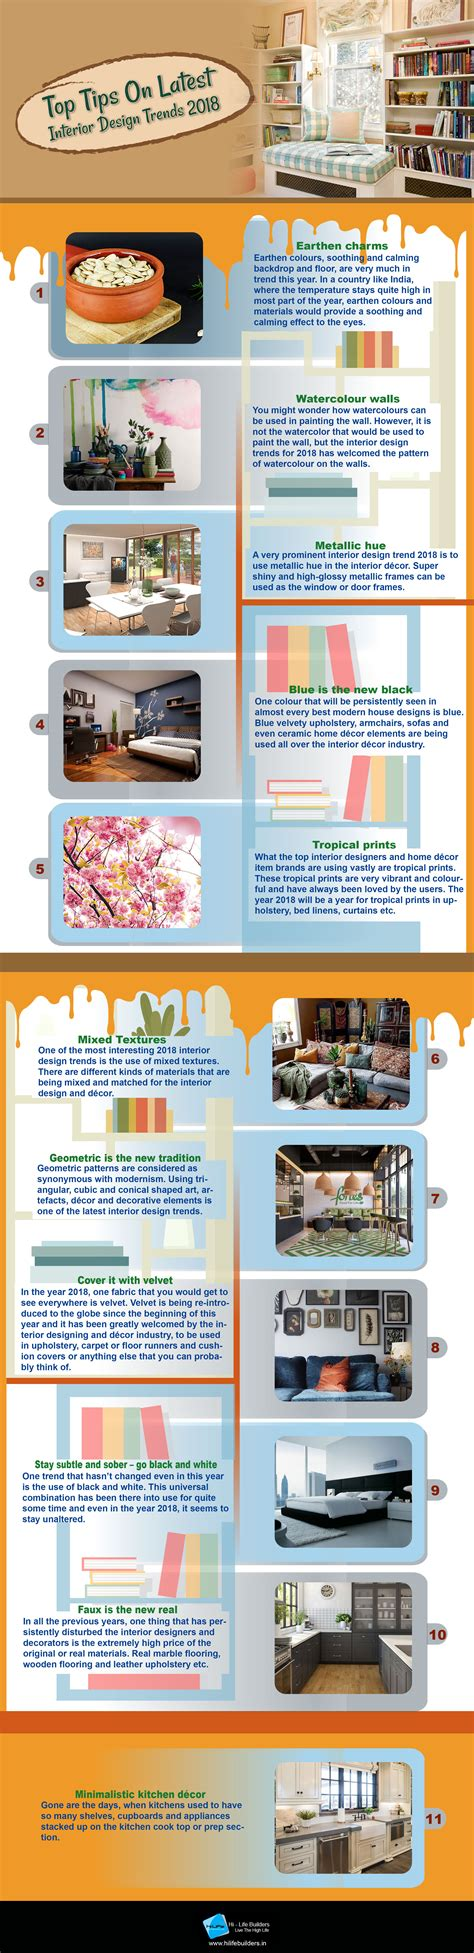 blog layout trends latest interior design trends 2018 home decor trends